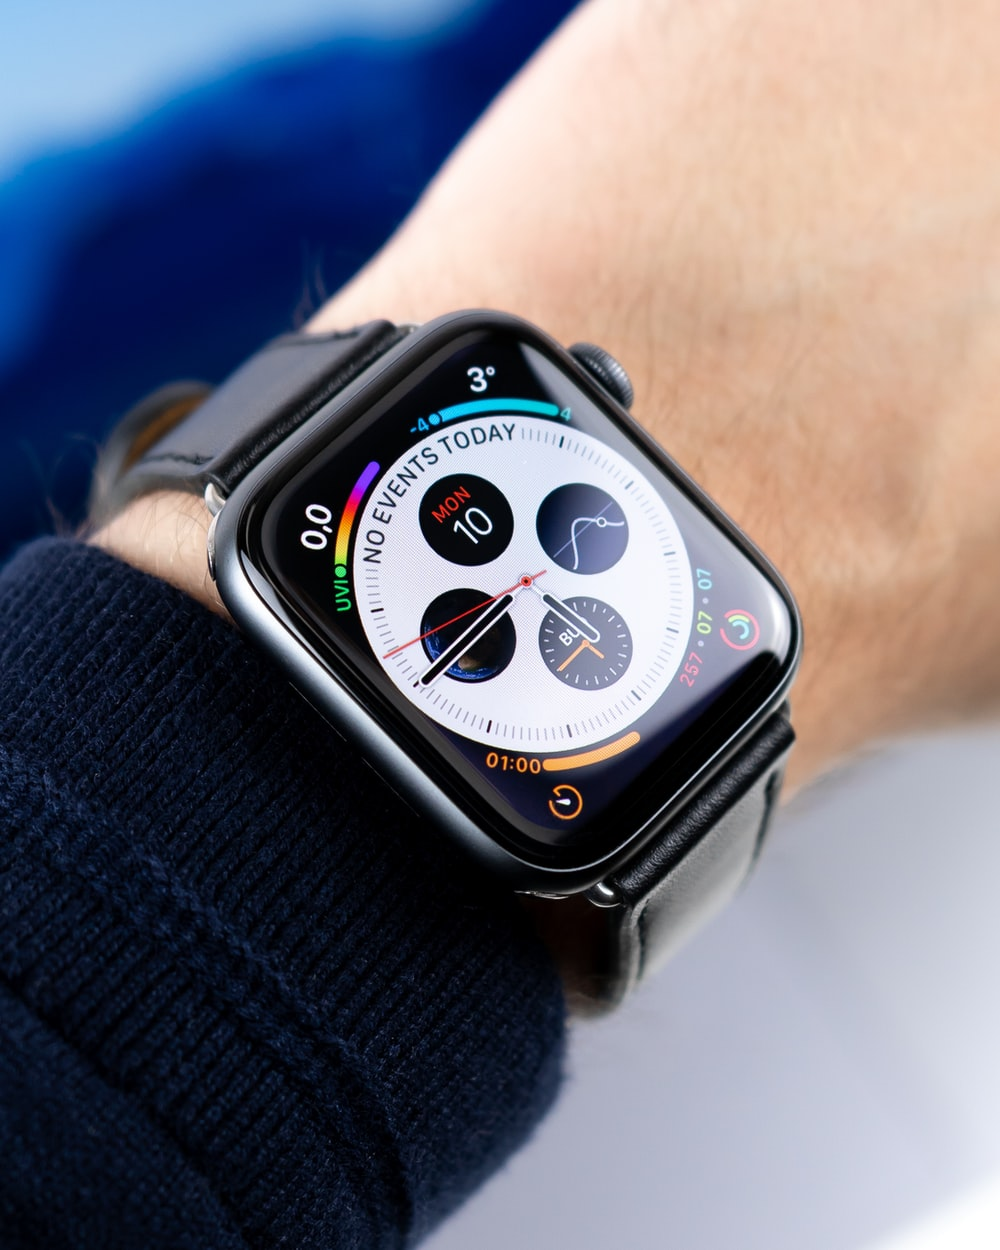 space gray Apple watch with black leather strap